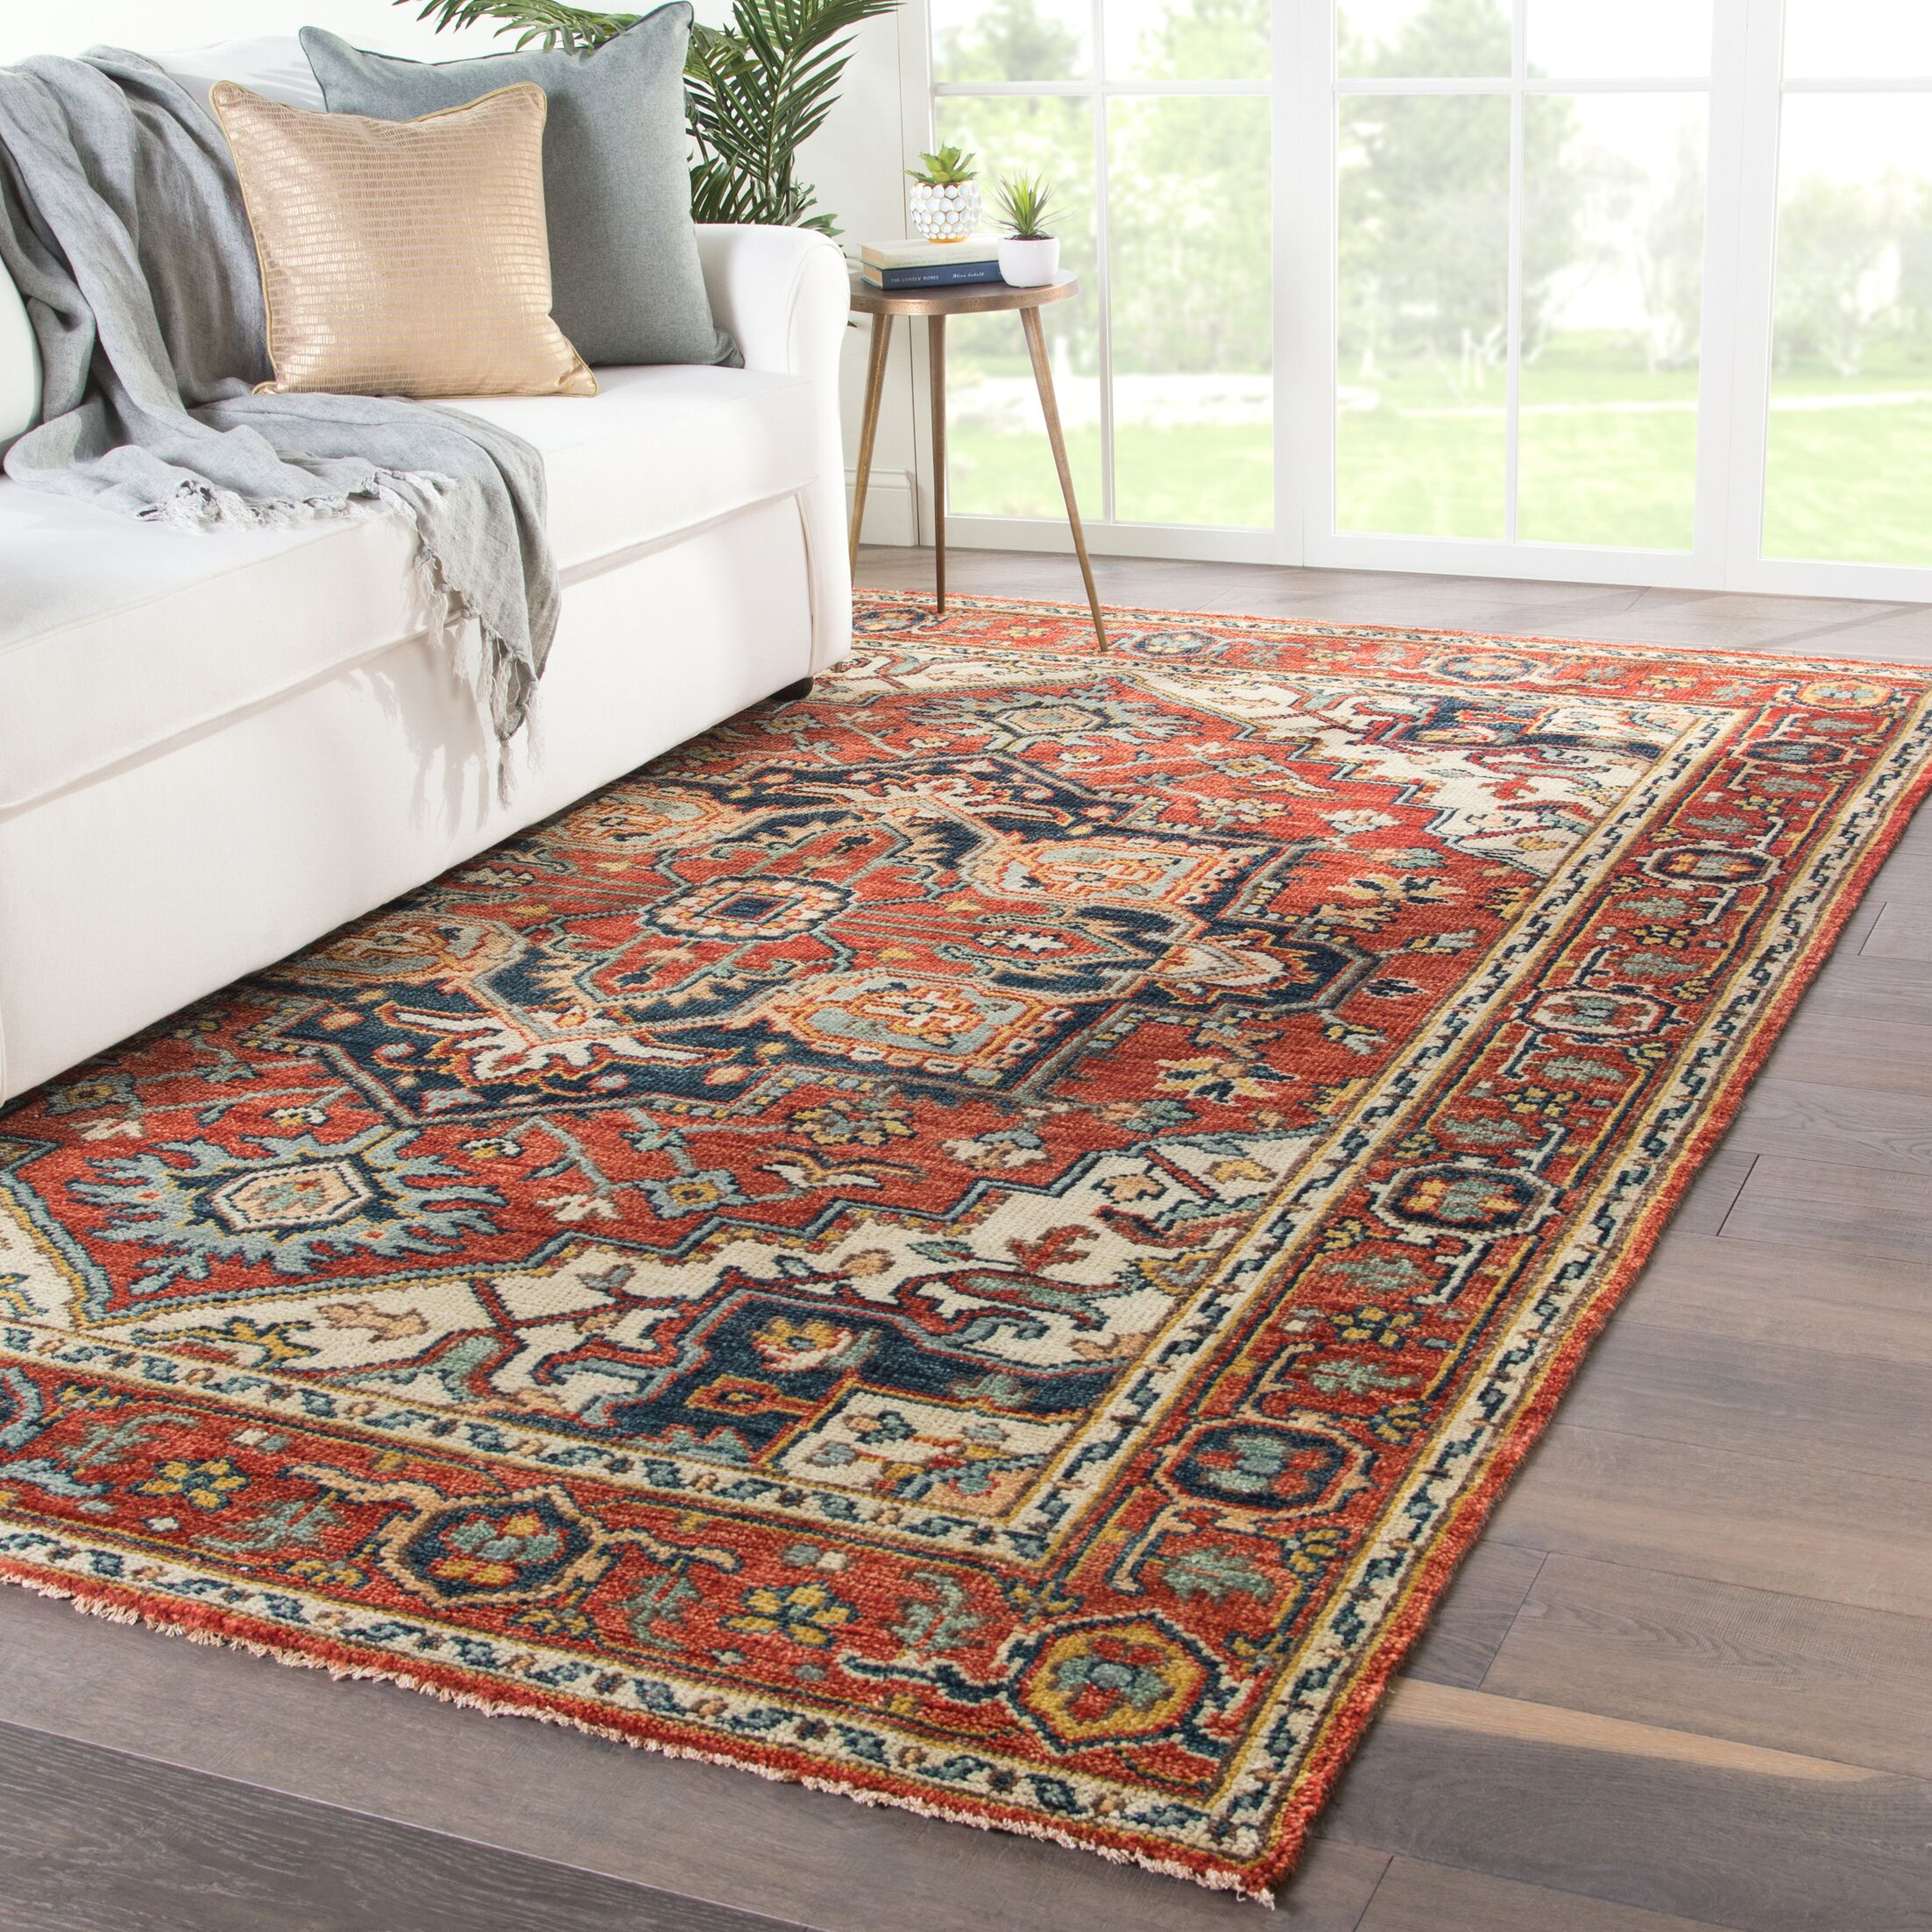 Dannie Hand-Knotted Wool Red/Beige Area Rug Rug Size: Rectangle 7'9